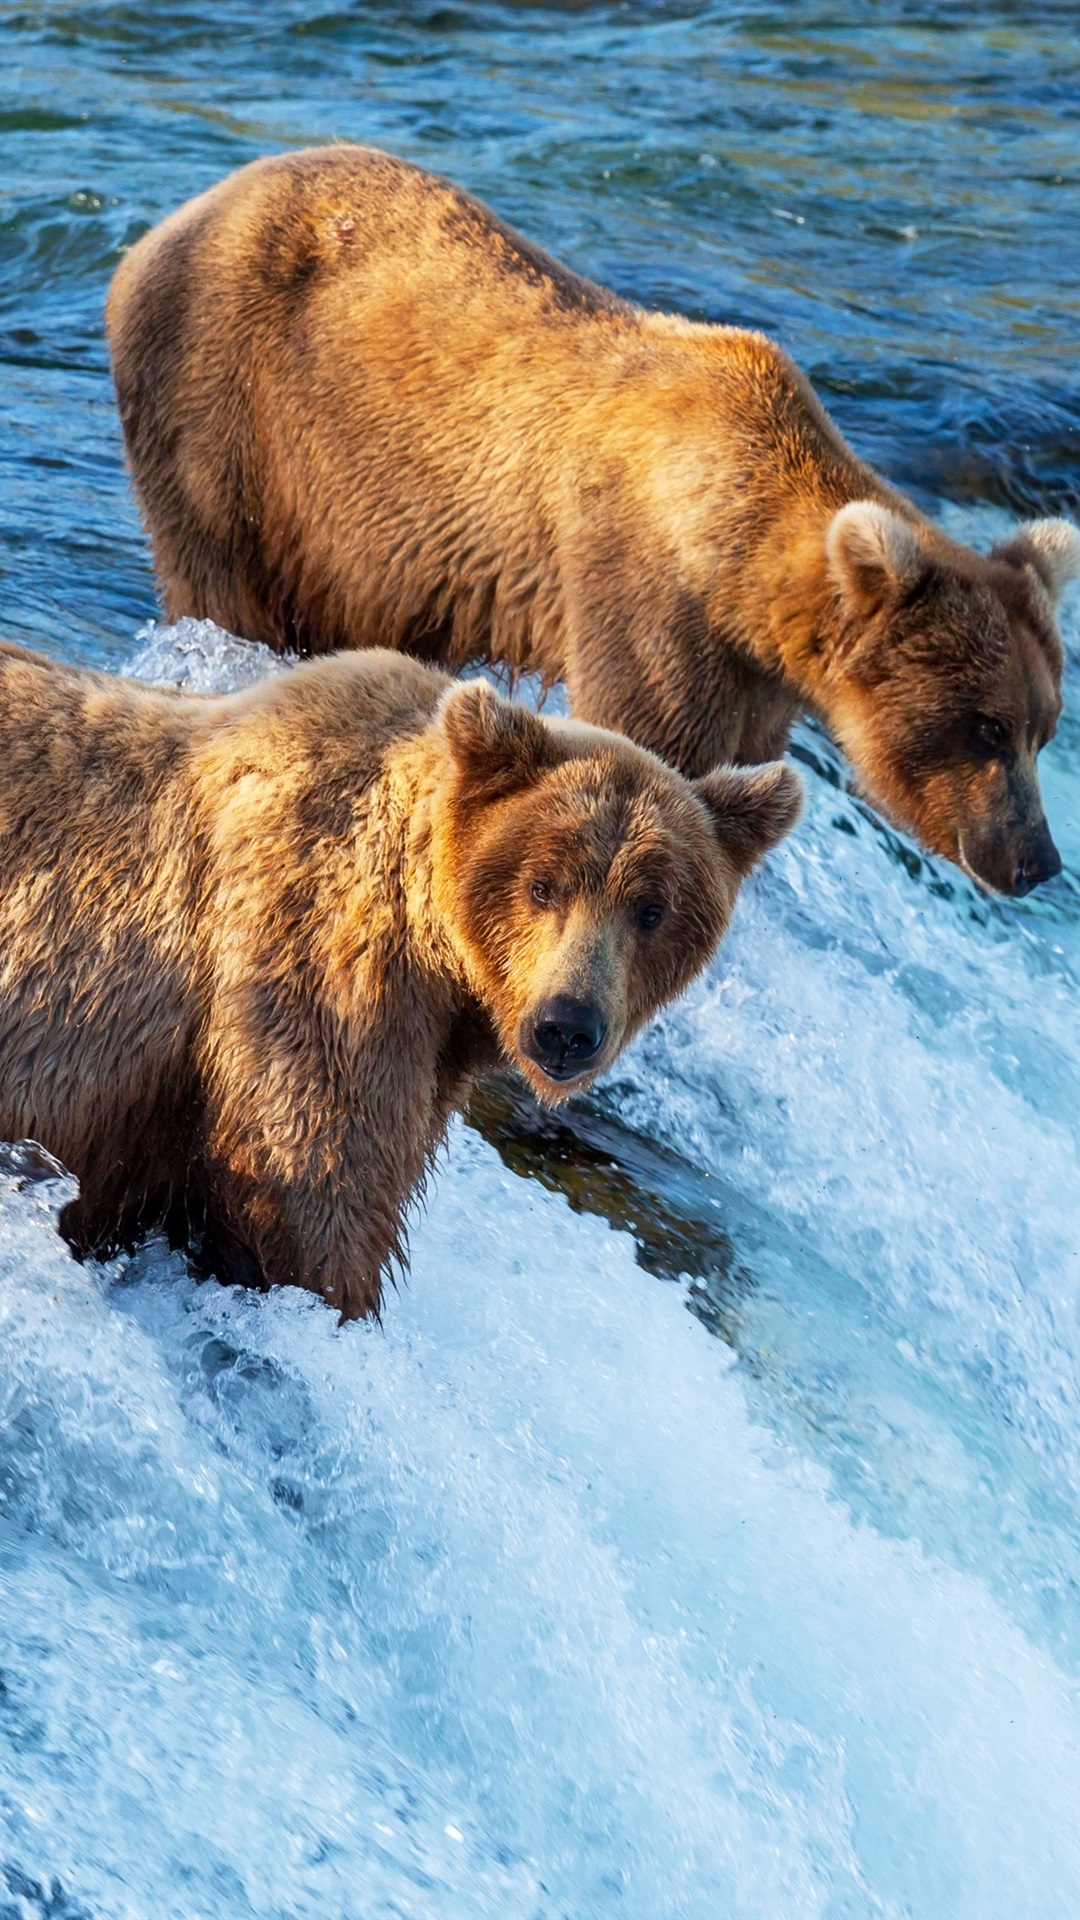 Two Brown Bears Hunting Fish Waterfall River 1080x1920 Iphone 8 7 6 6s Plus Wallpaper Background Picture Image